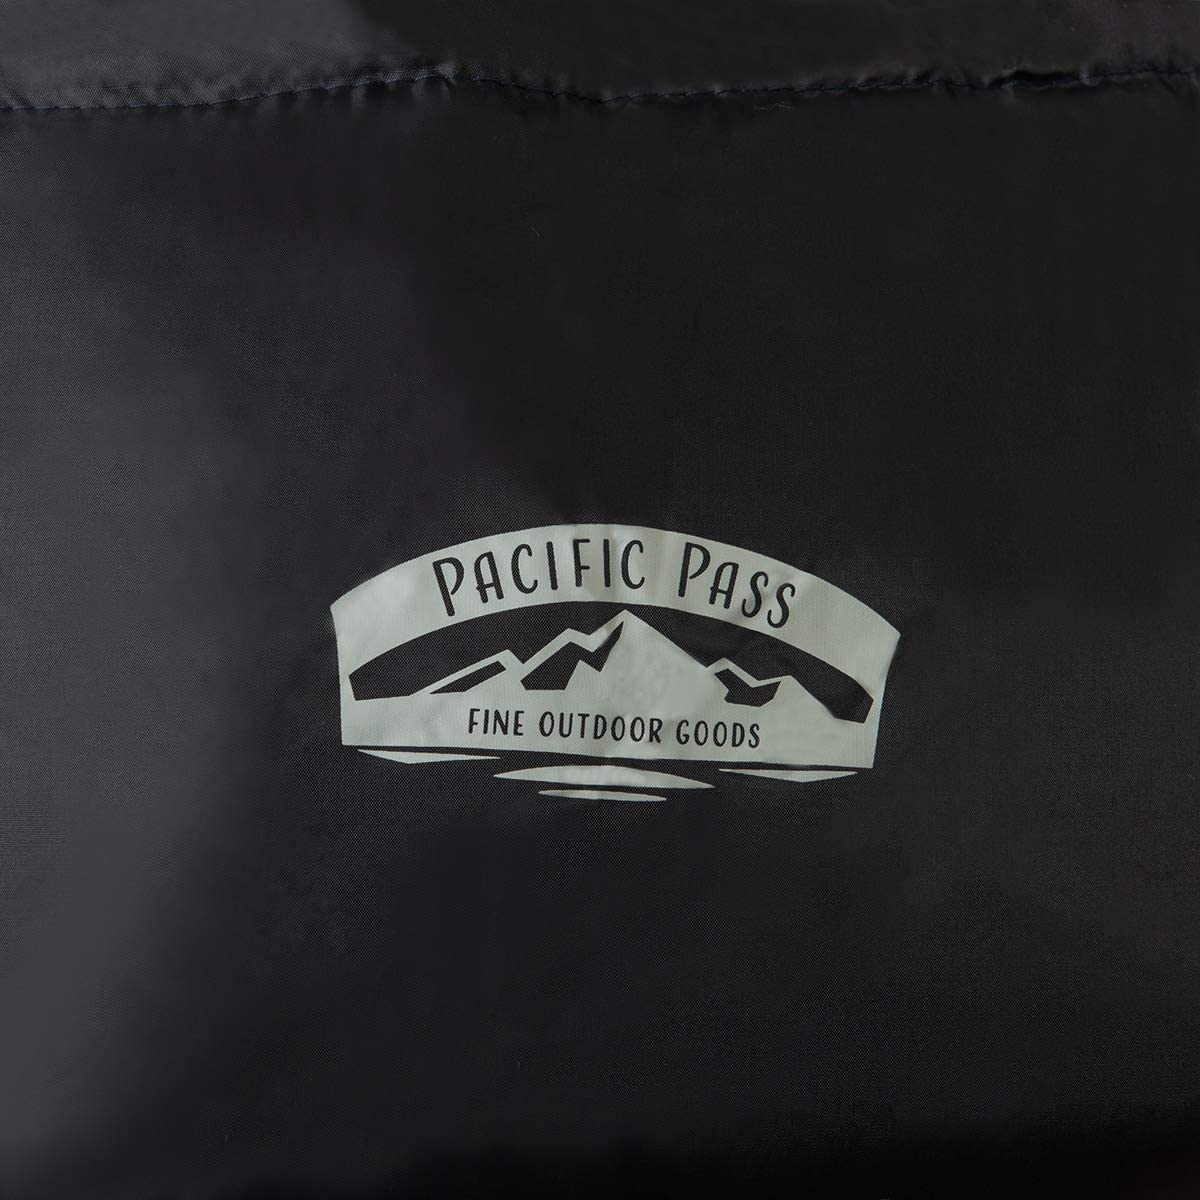 Pacific Pass Kids Sleeping Bag with Carry Bag Temperature 30 Degree